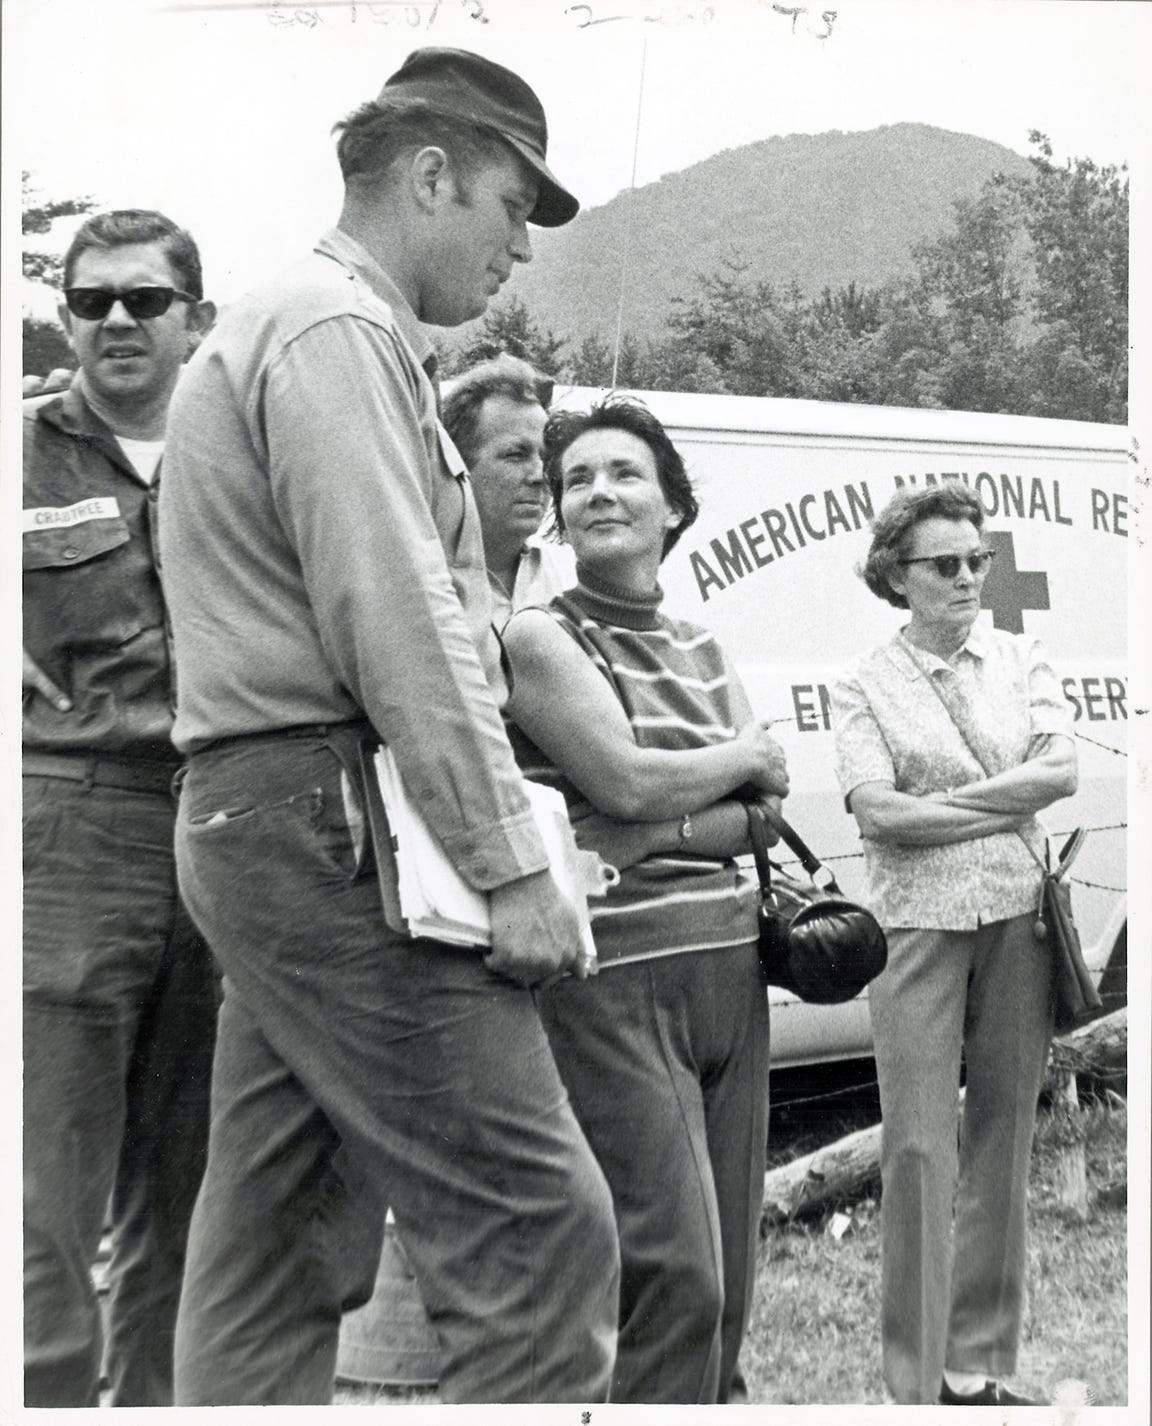 Mrs. William Martin waits for a helicopter to take her to Spence Field during the search for her son, Dennis Martin, 6, on June 23, 1969 in the Great Smoky Mountains National Park. (KNOXVILLE NEWS SENTINEL ARCHIVE)